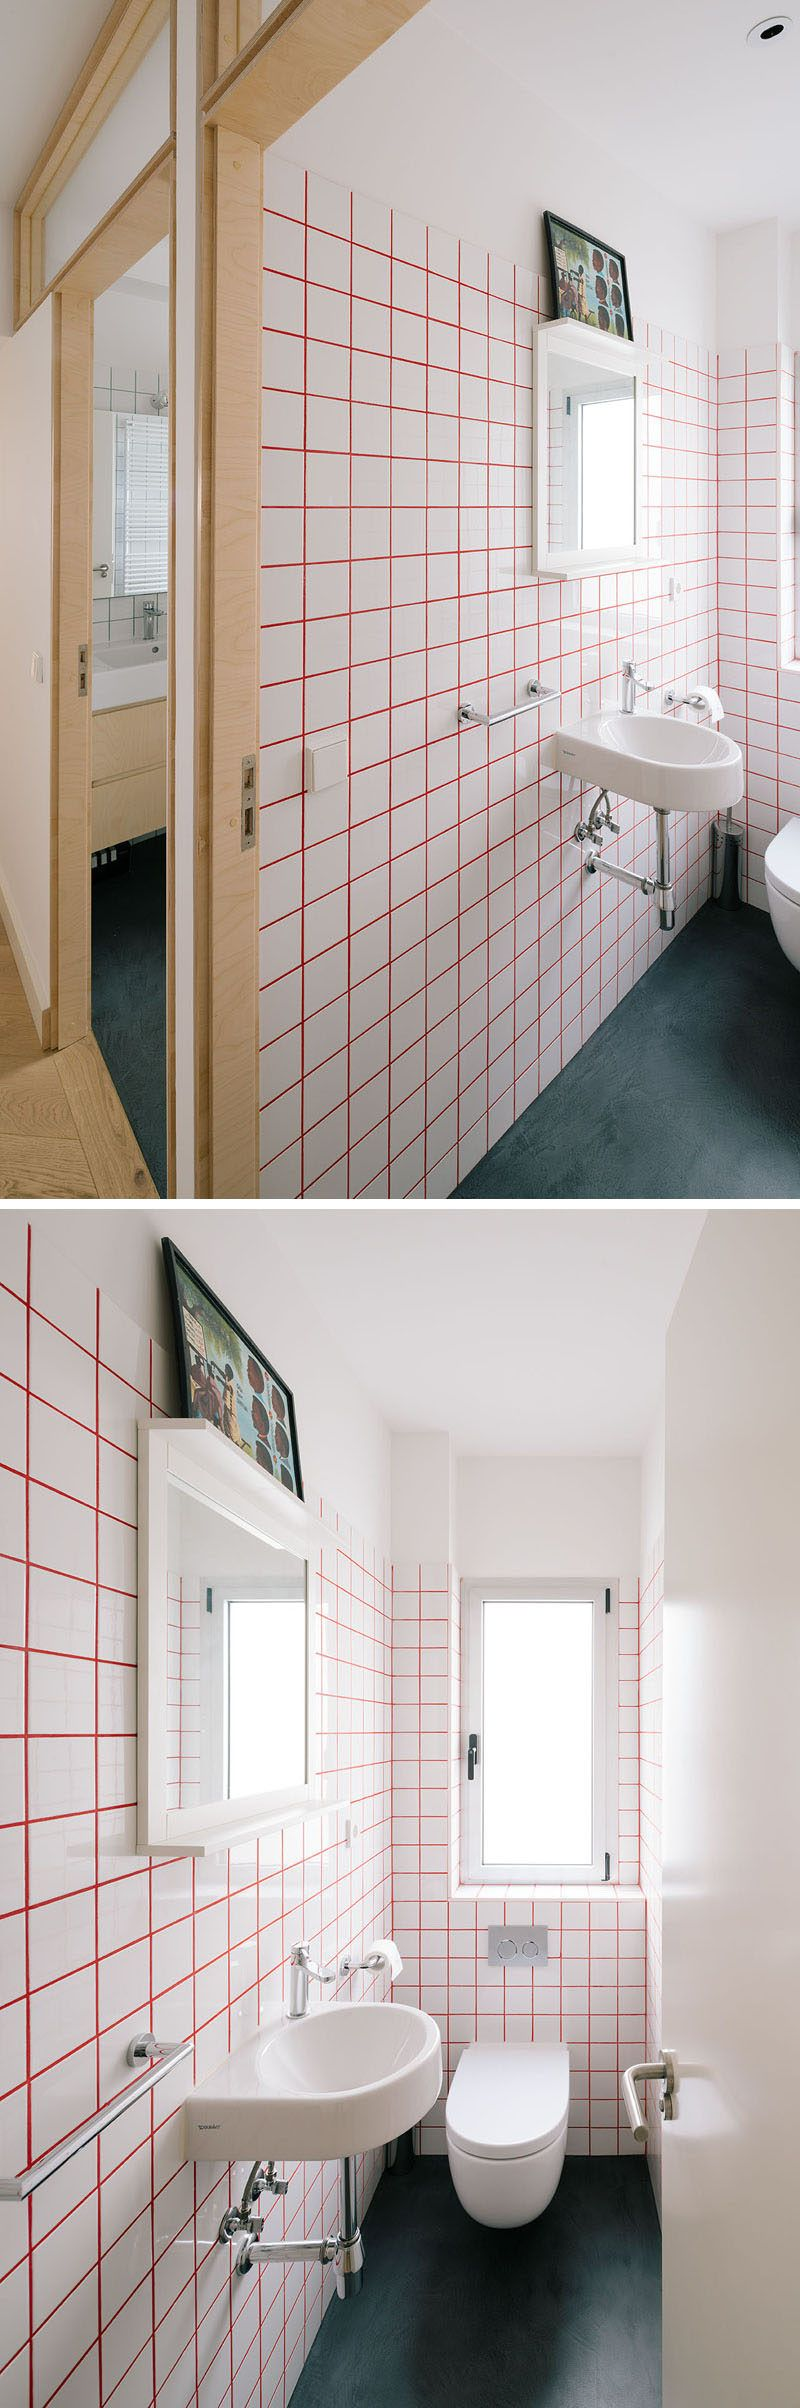 Bright Red Grout Was Used Between Square White Tiles To